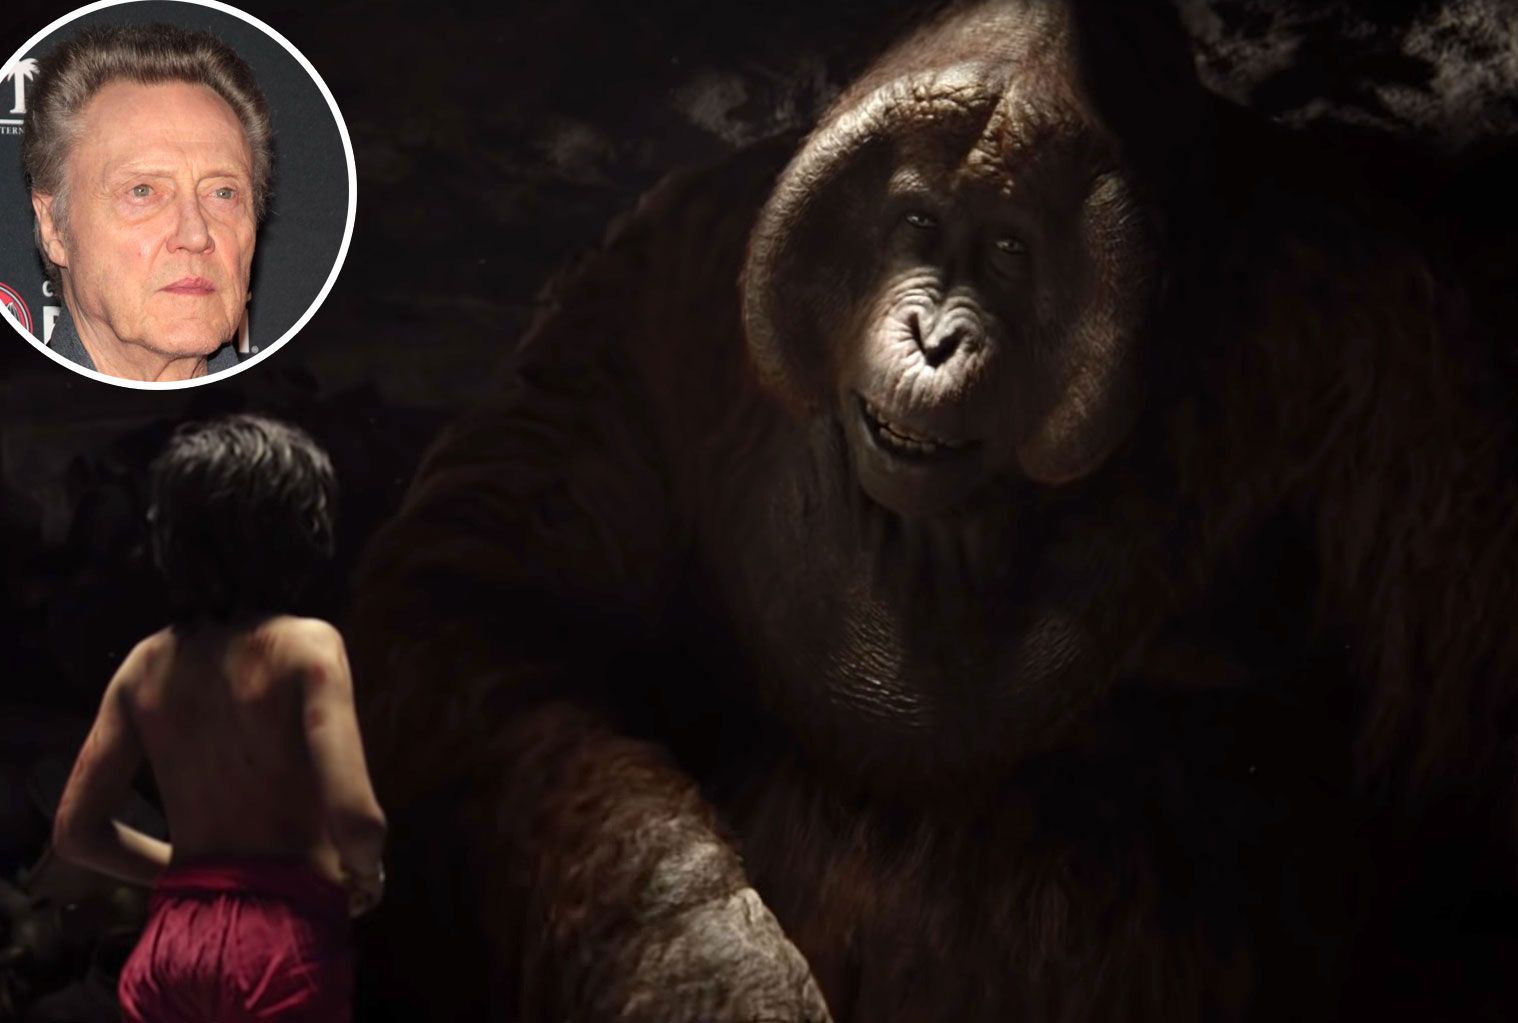 Christopher Walken Jungle Book King Louie Voice Over Disney and Pixar Characters - King Louie in The Jungle Book (2016)